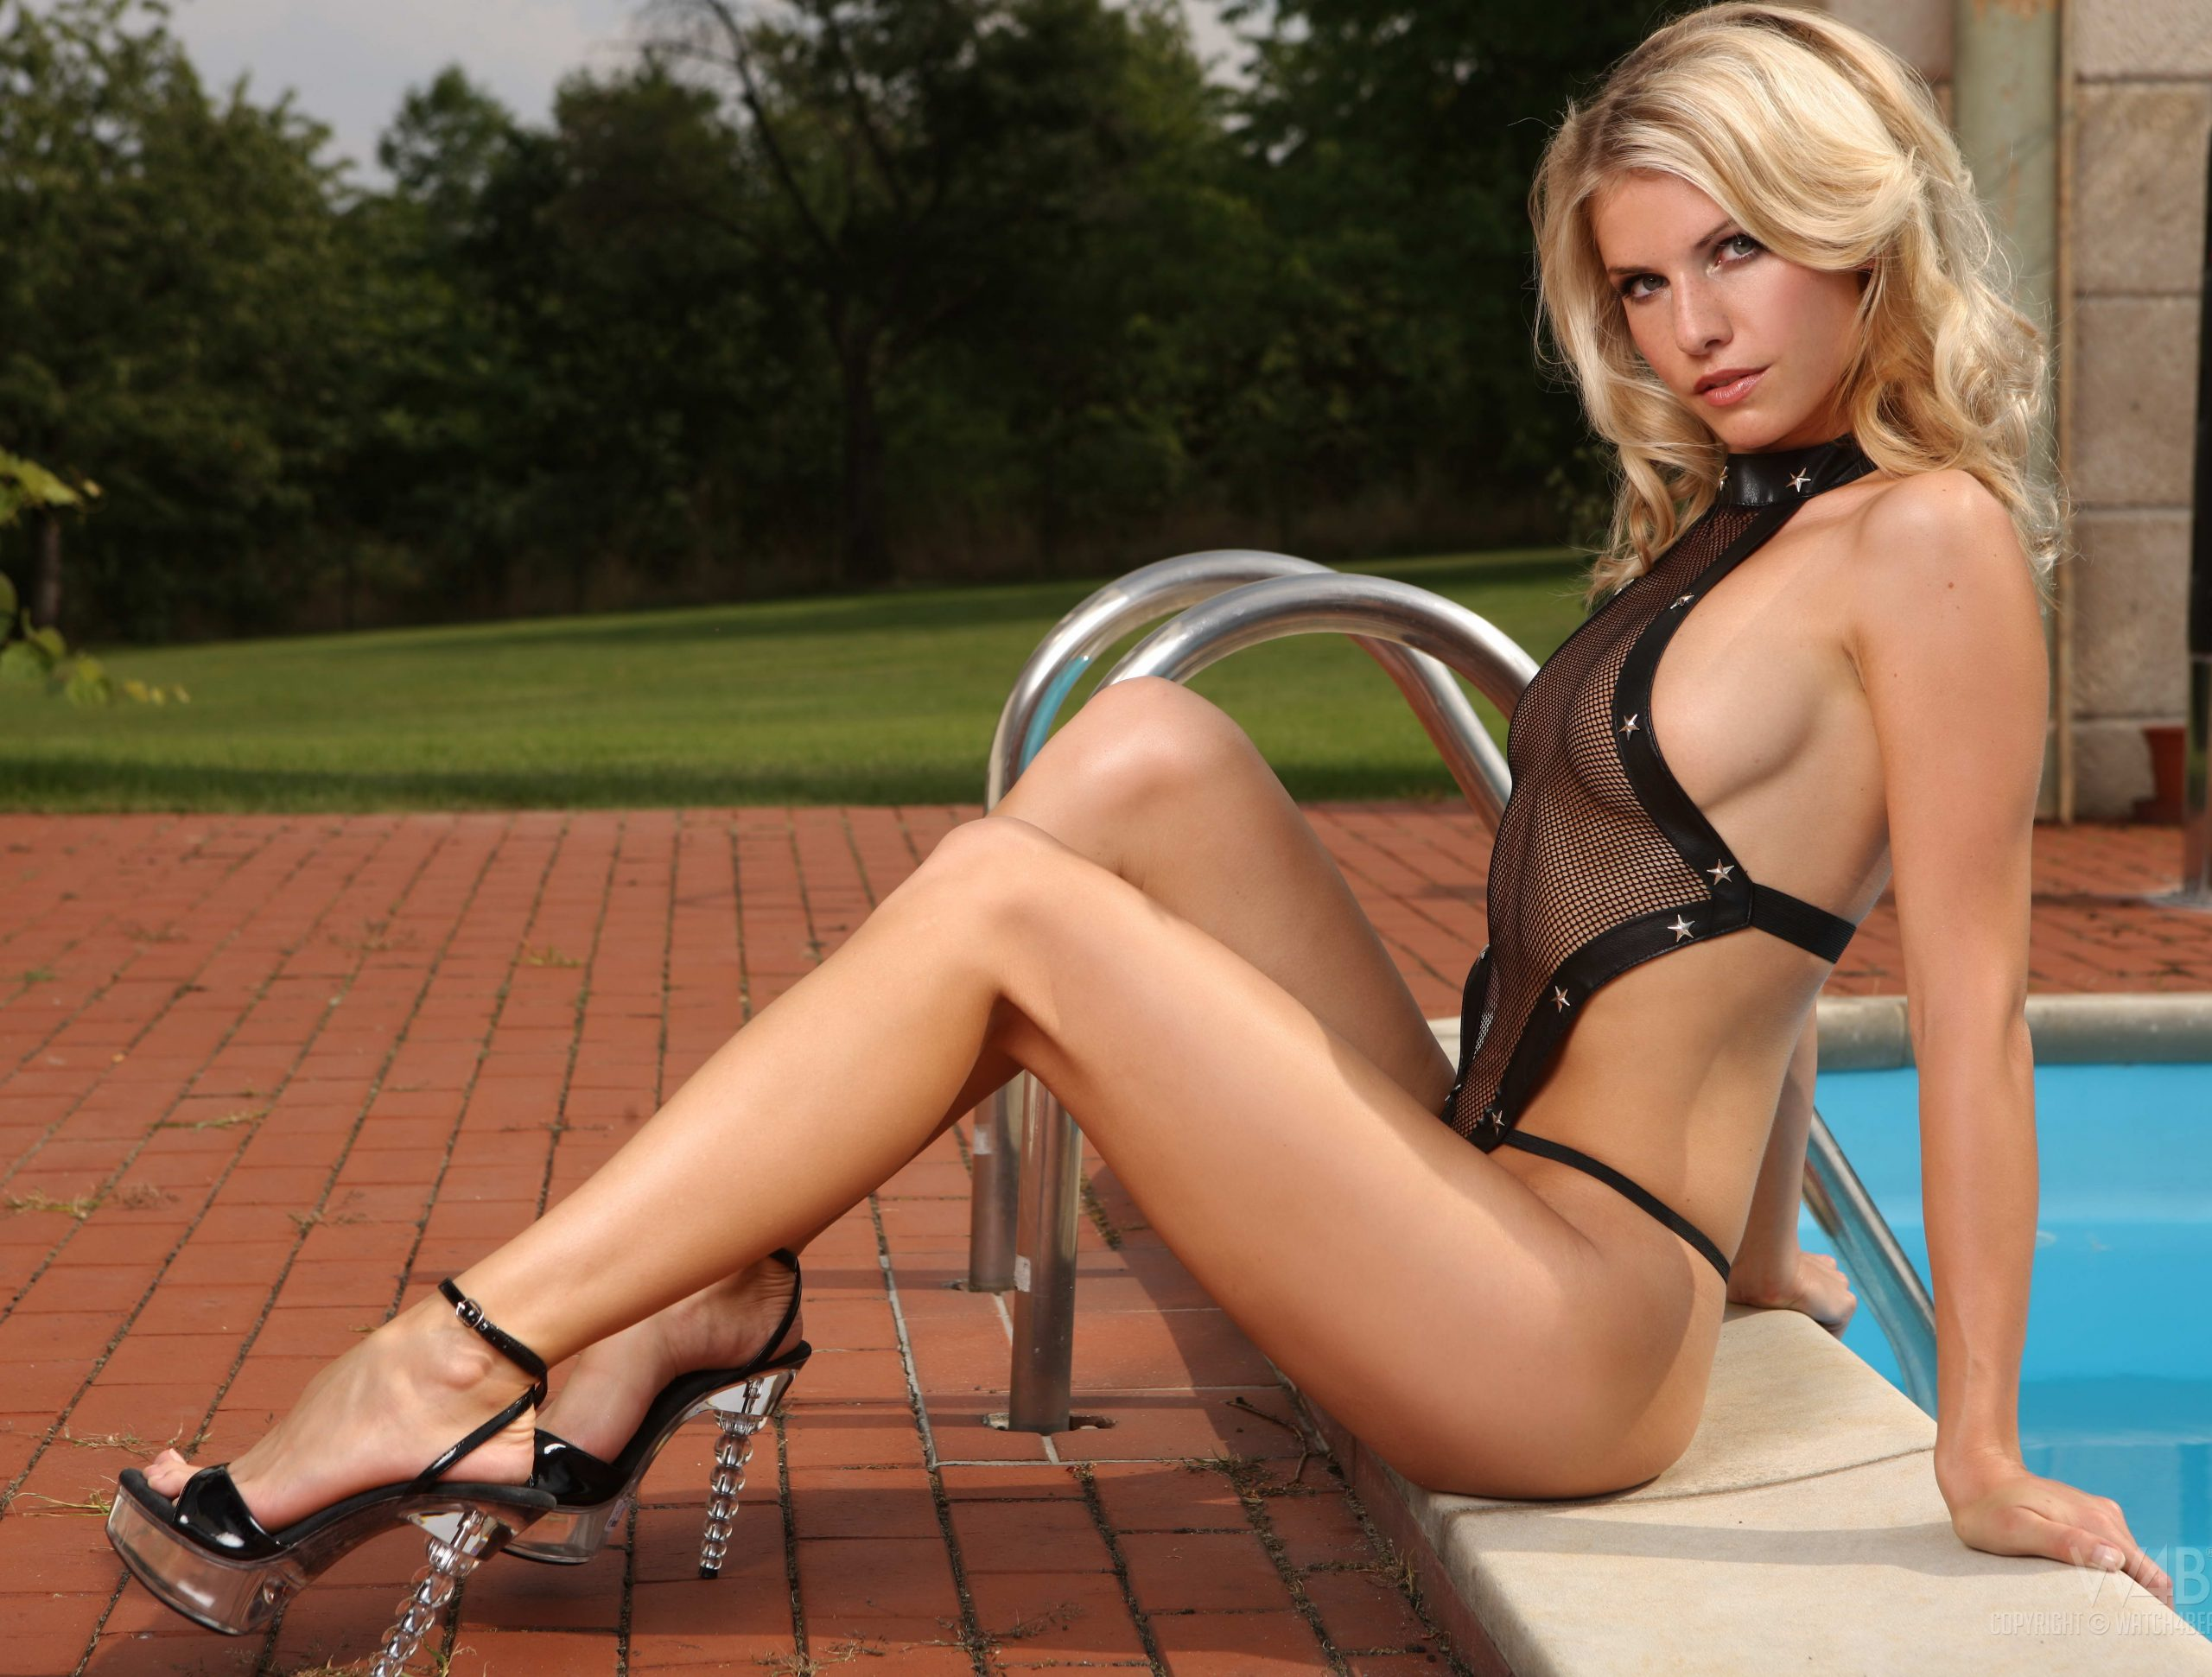 Croydon escorts - Breathtaking Blonde